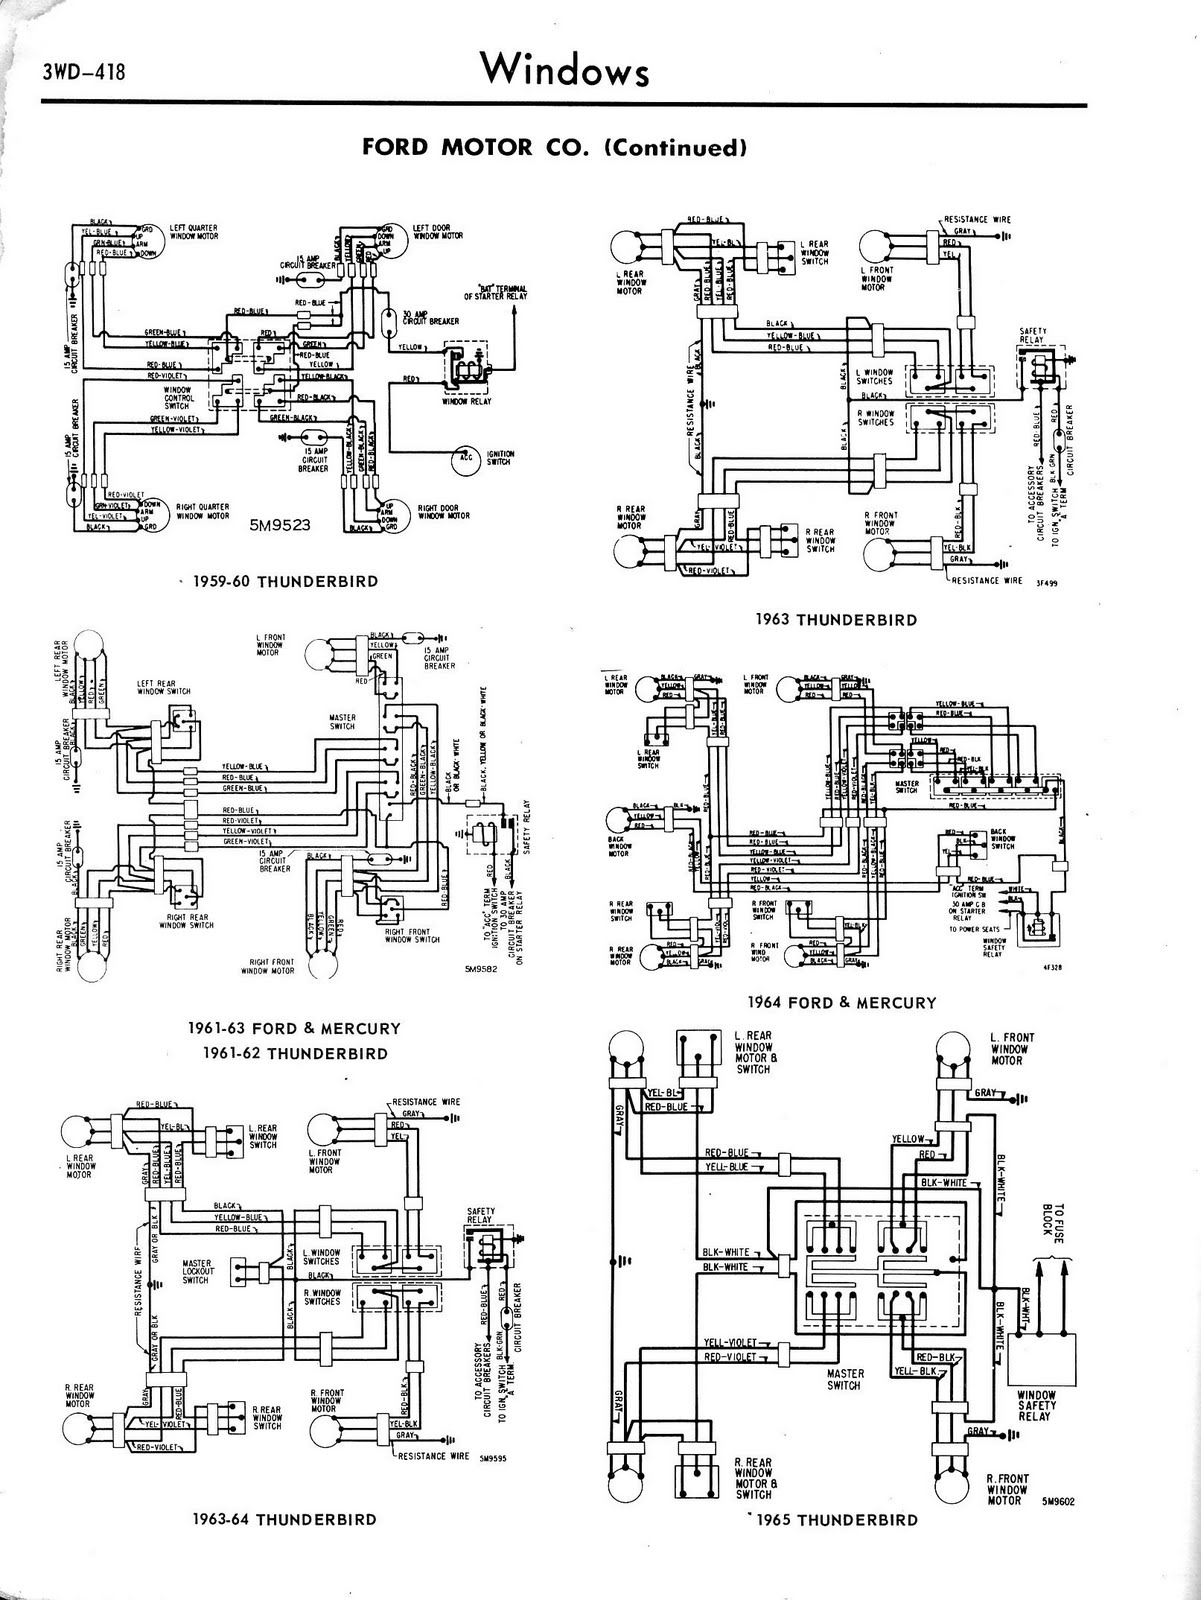 1965 vw beetle wiring diagram image details 1965 ford thunderbird wiring diagram